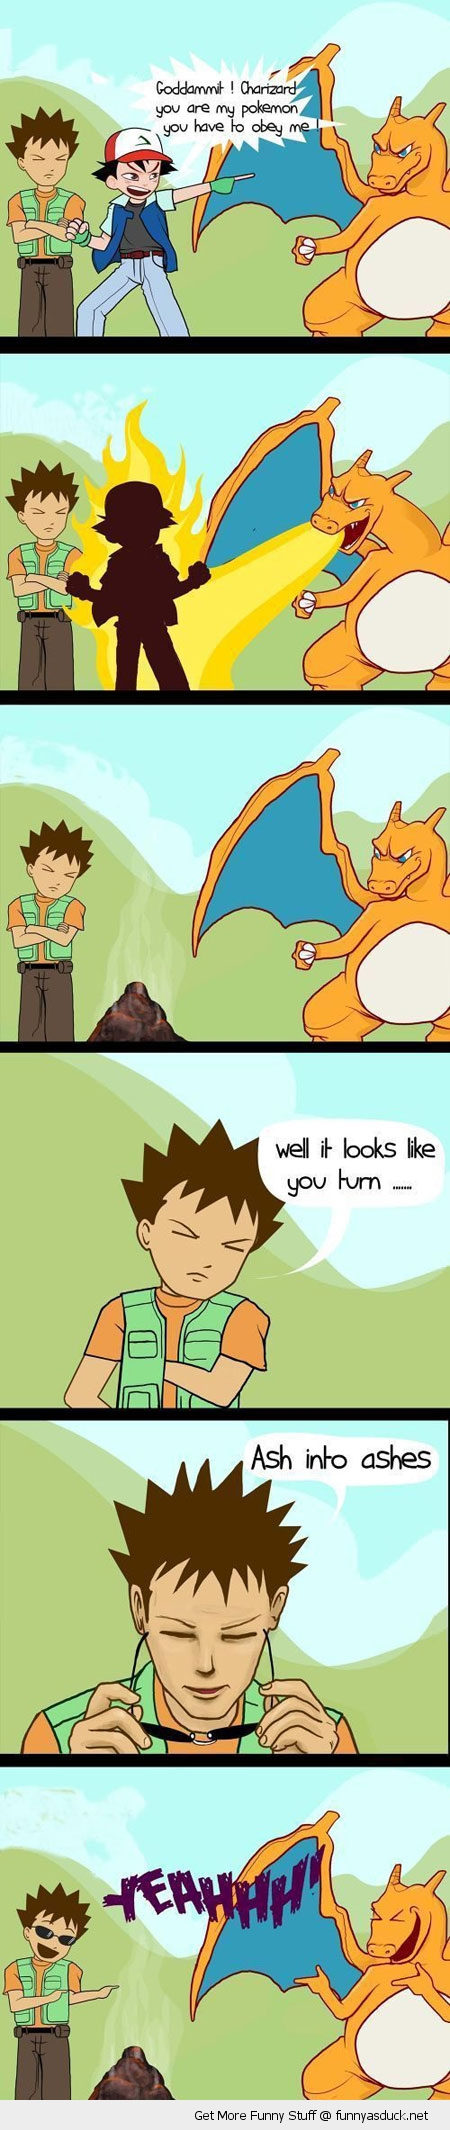 ash ashes charzard pokemon gaming nintendo comic funny pics pictures pic picture image photo images photos lol